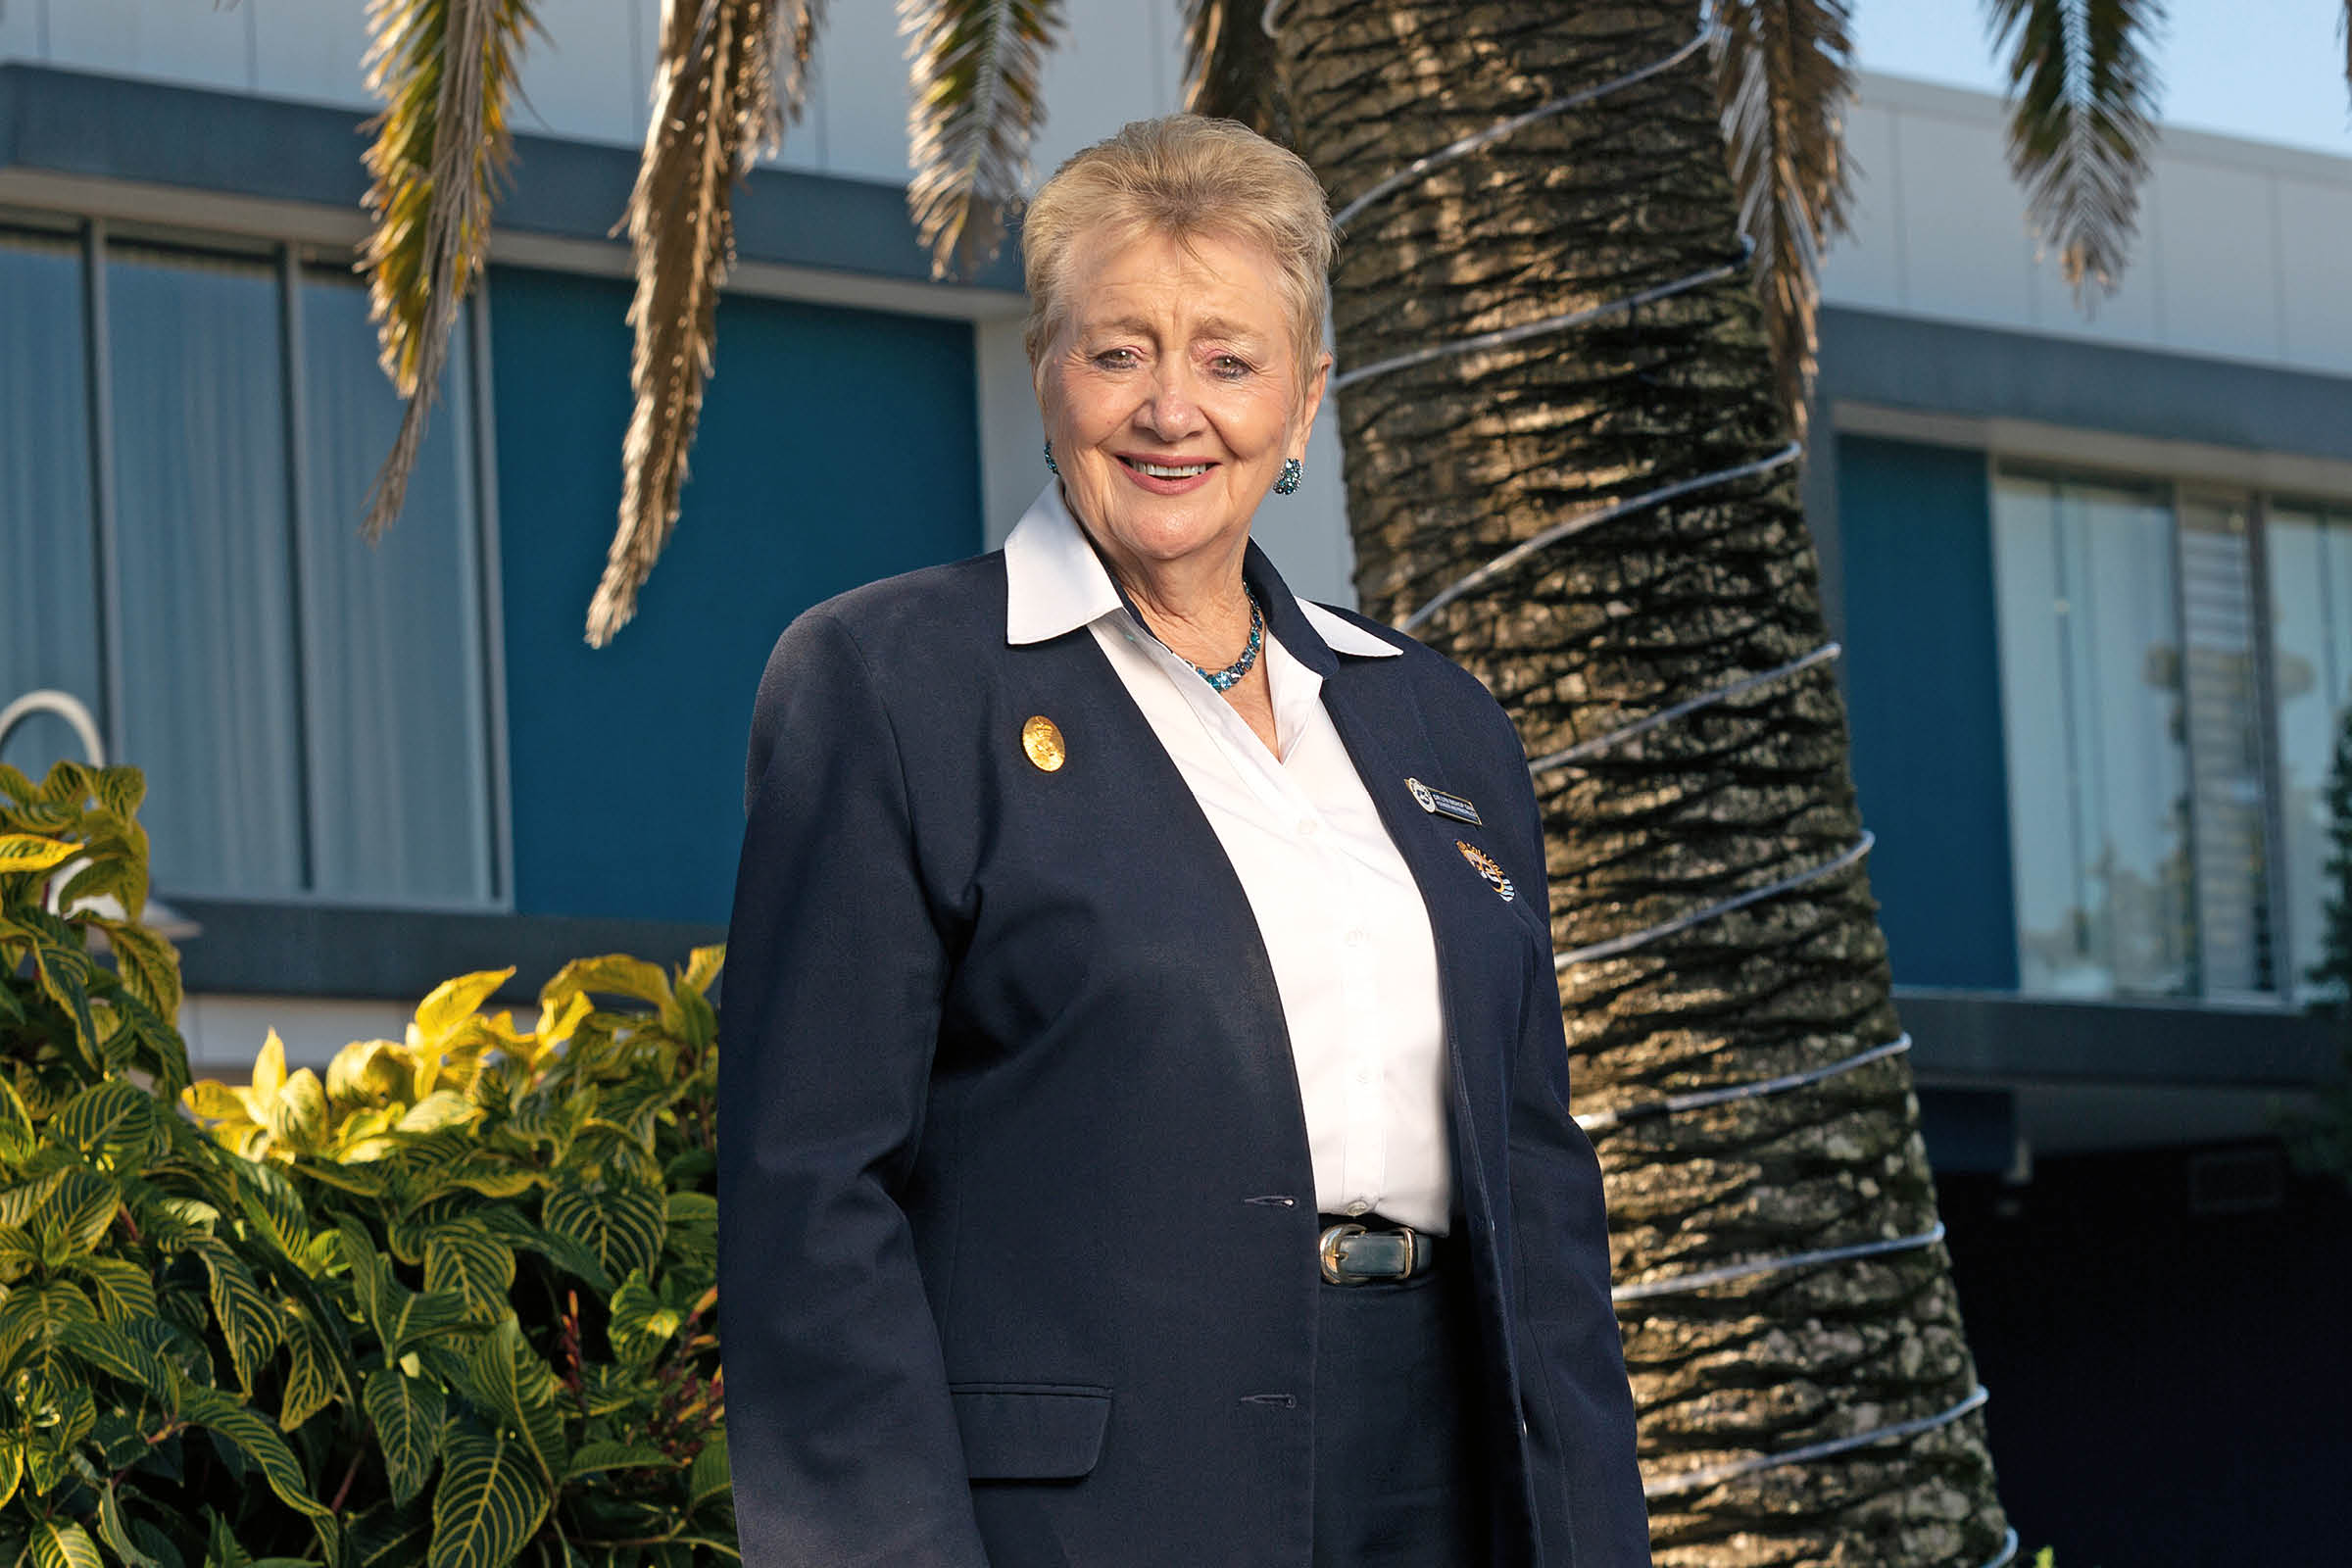 Lyn Bishop, Founder and Principal of Sheldon College